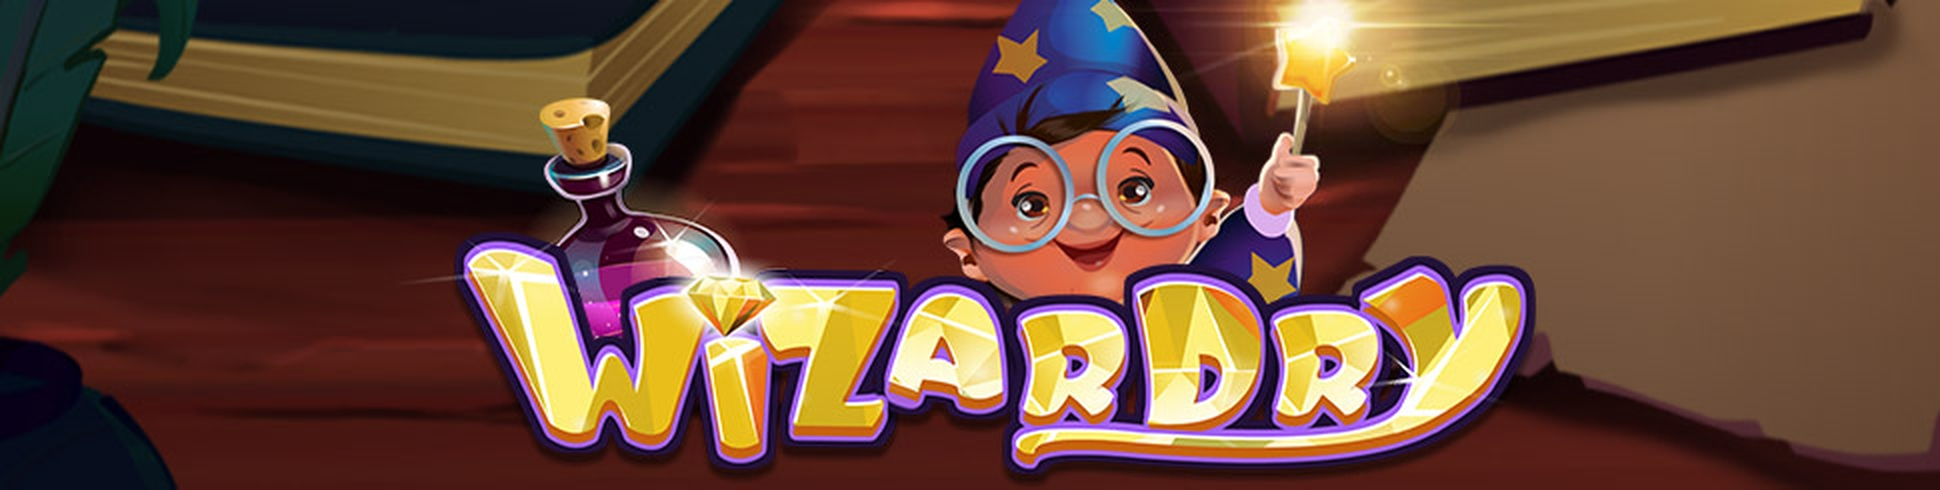 The Wizardry (Mobilots) Online Slot Demo Game by Mobilots